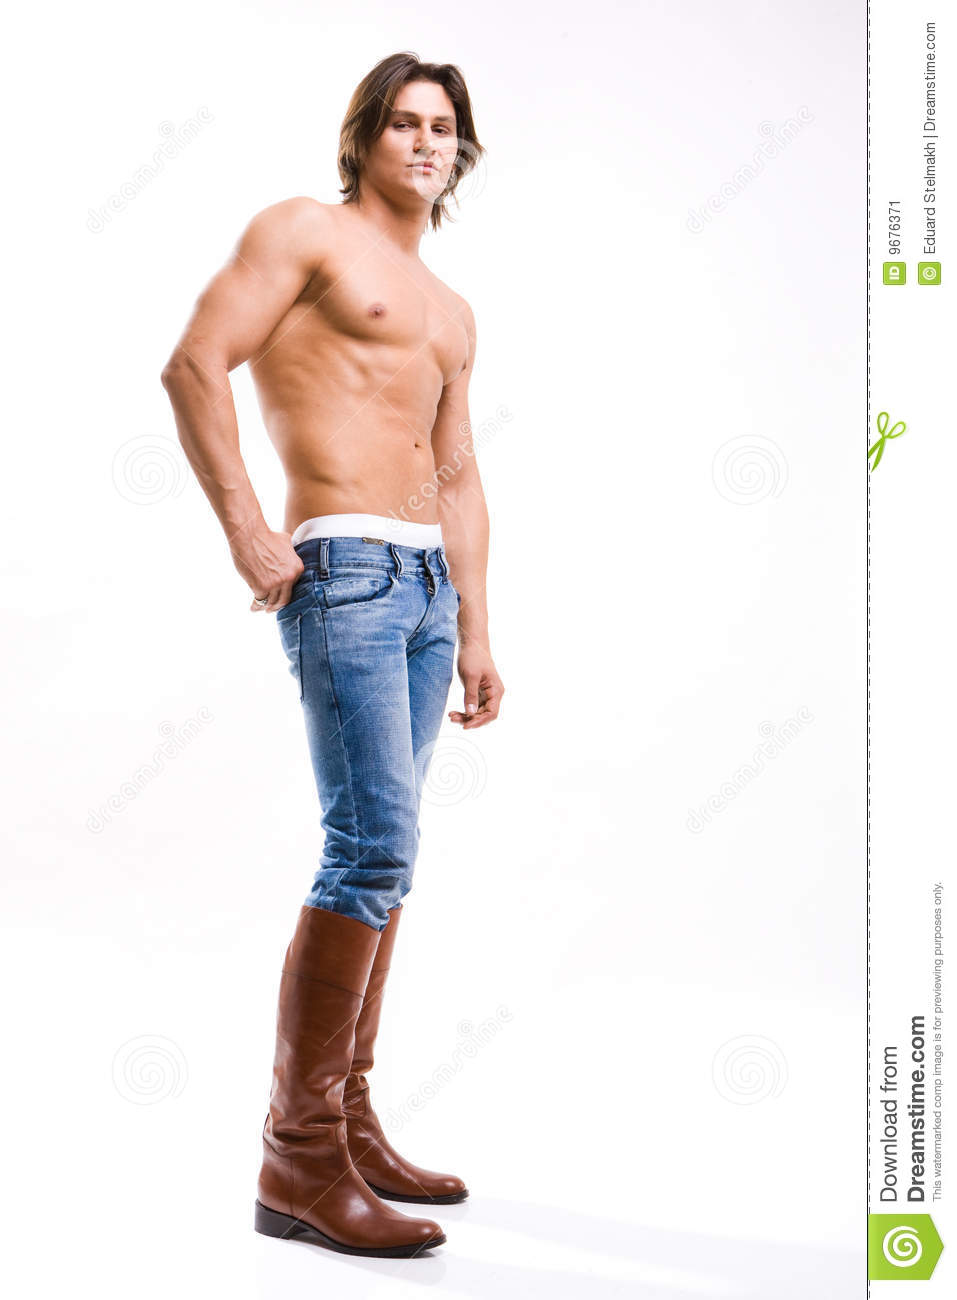 Fashion Shot Of A Young Man In A Jeans And Boots Stock Image Image